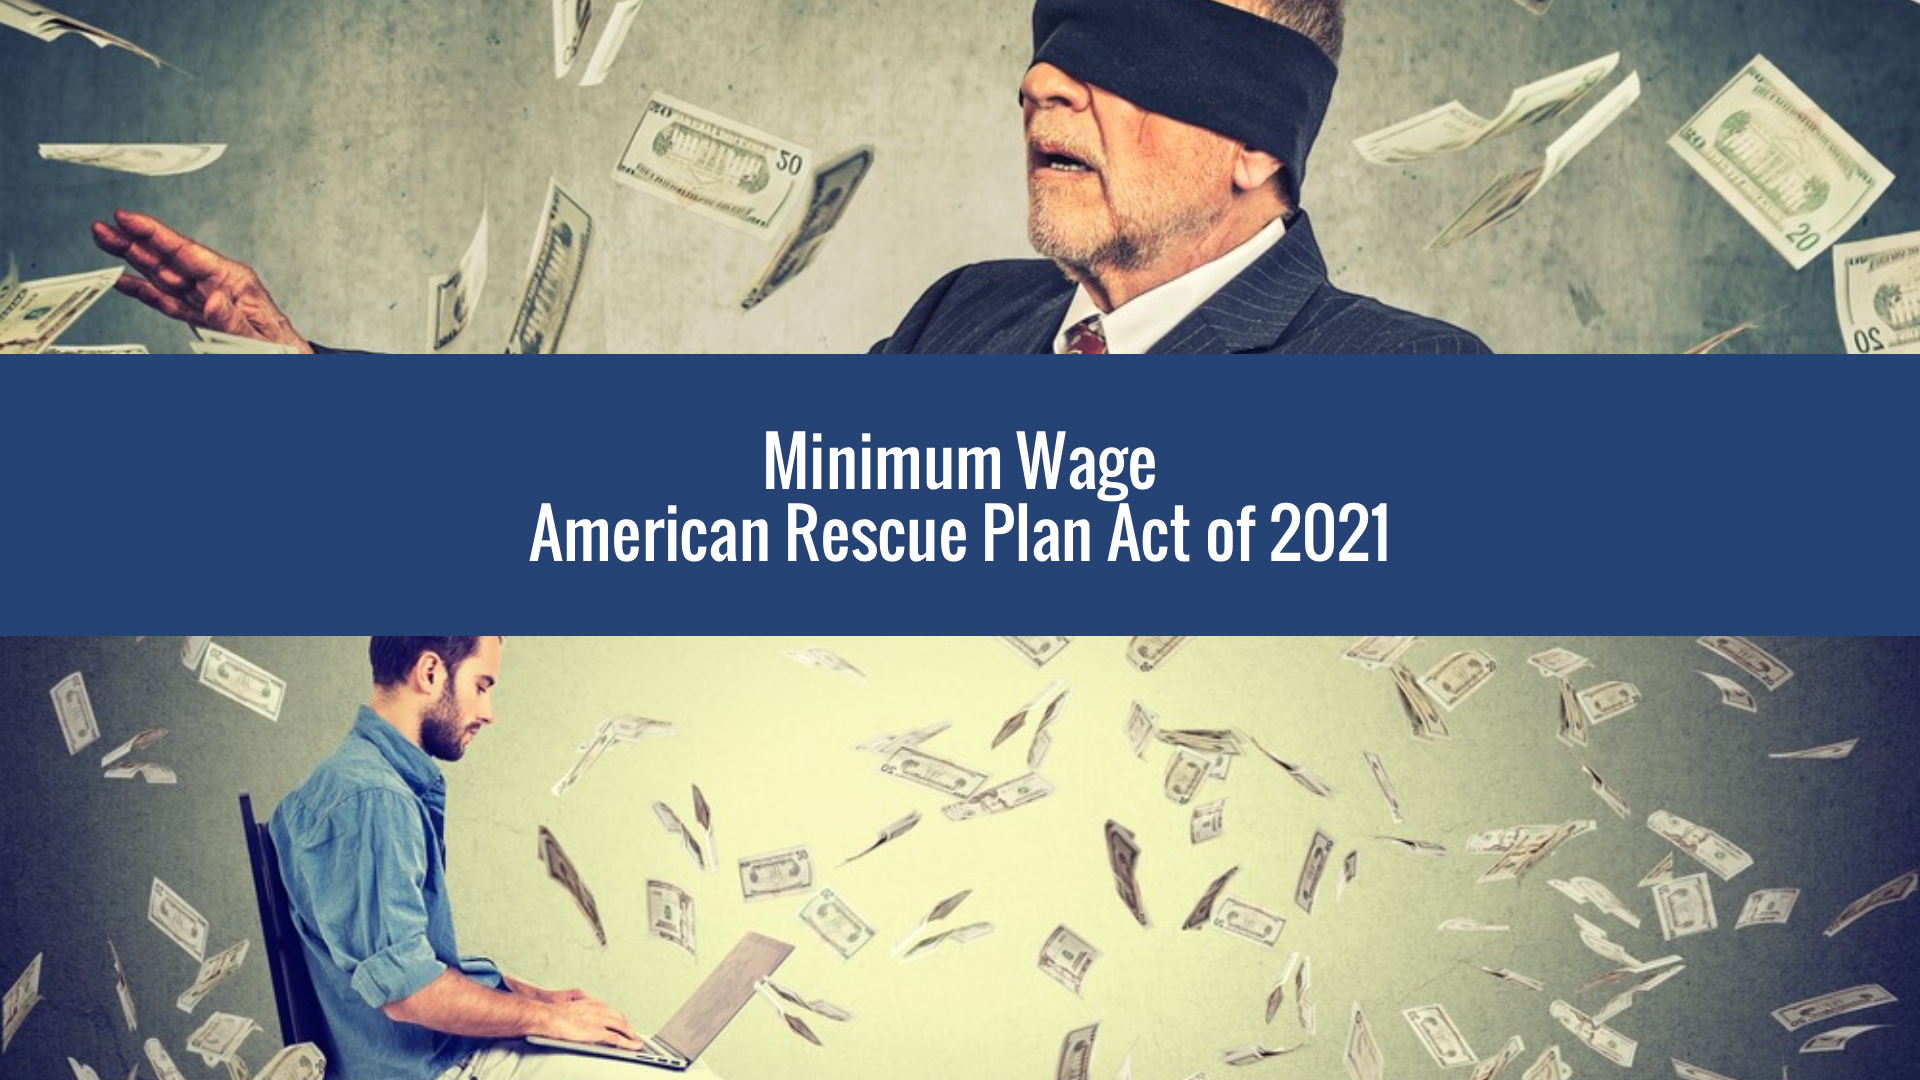 Health Care Employers Should Brace For Increased Workforce Costs & Risks Under American Rescue Plan Act Of 2021 Minimum Wage Amendments